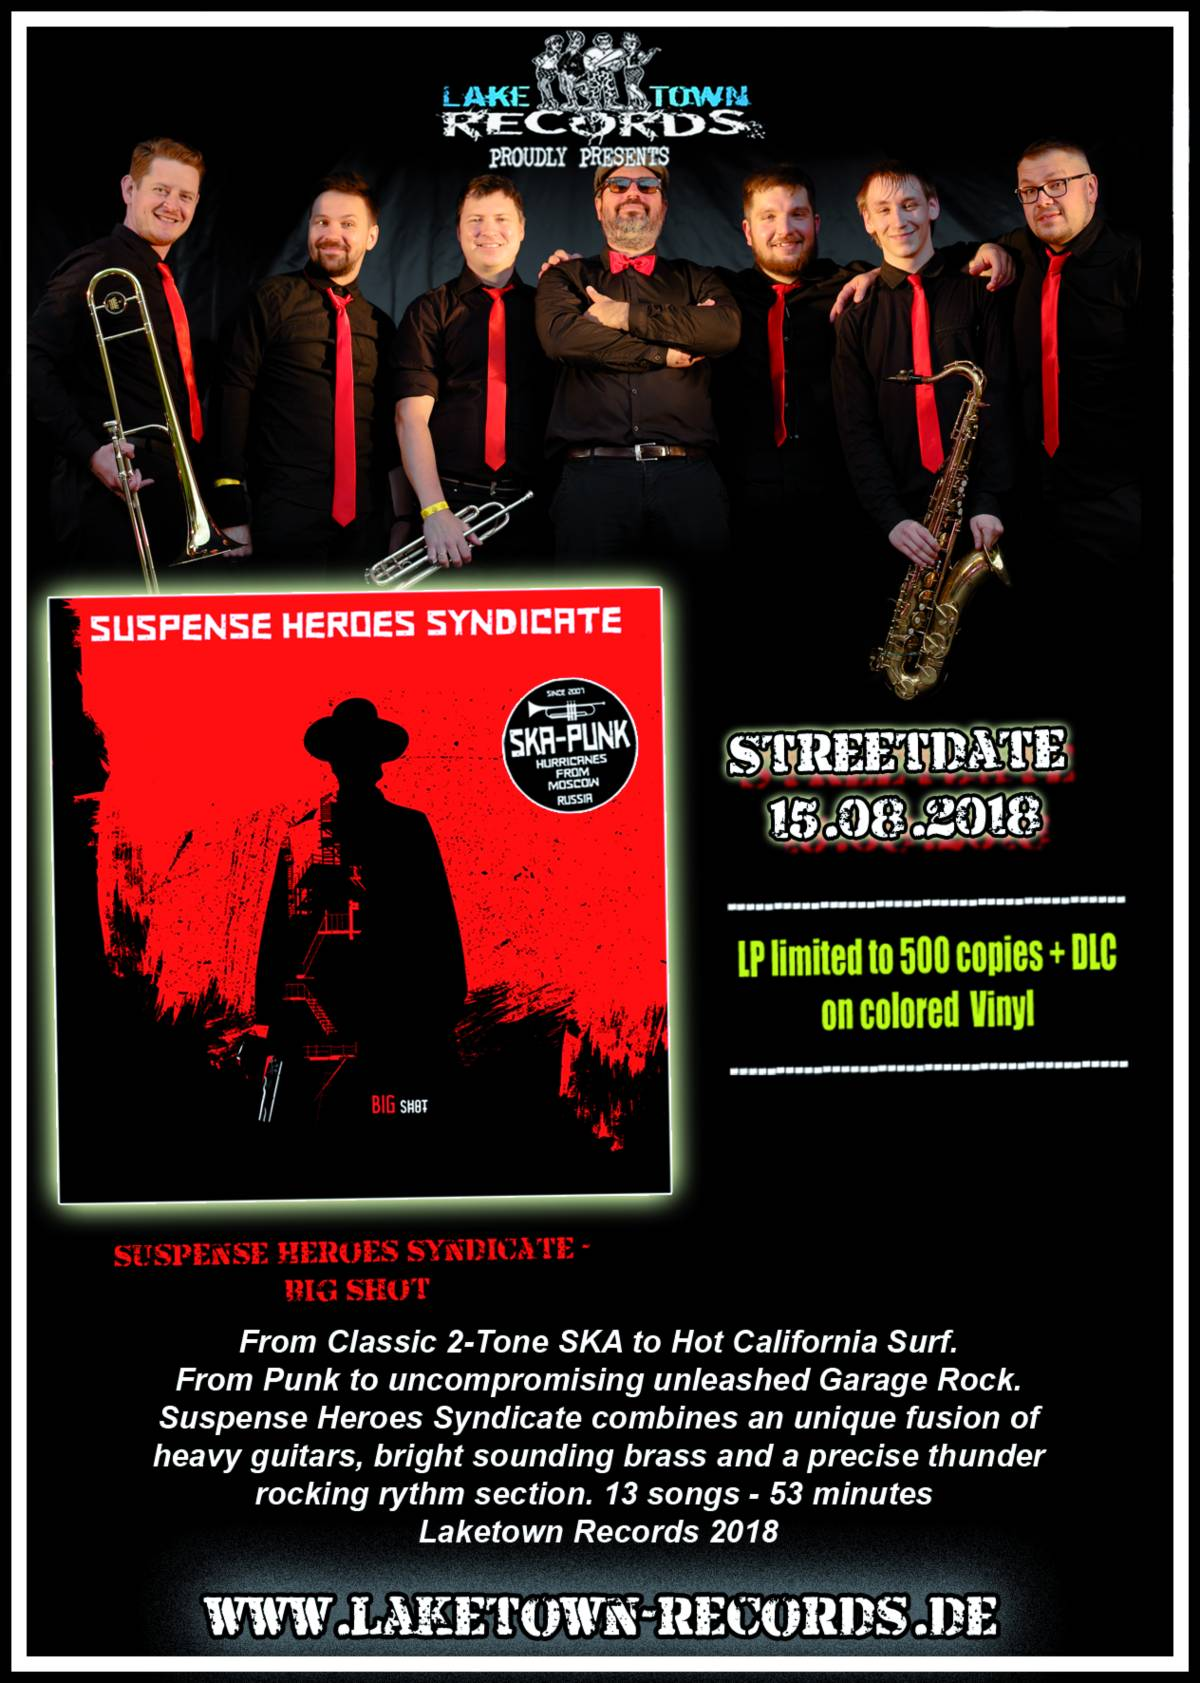 SUSPENSE HEROES SYNDICATE - BIG SHOT (LP) + DLC LIMITED COLORED VINYL